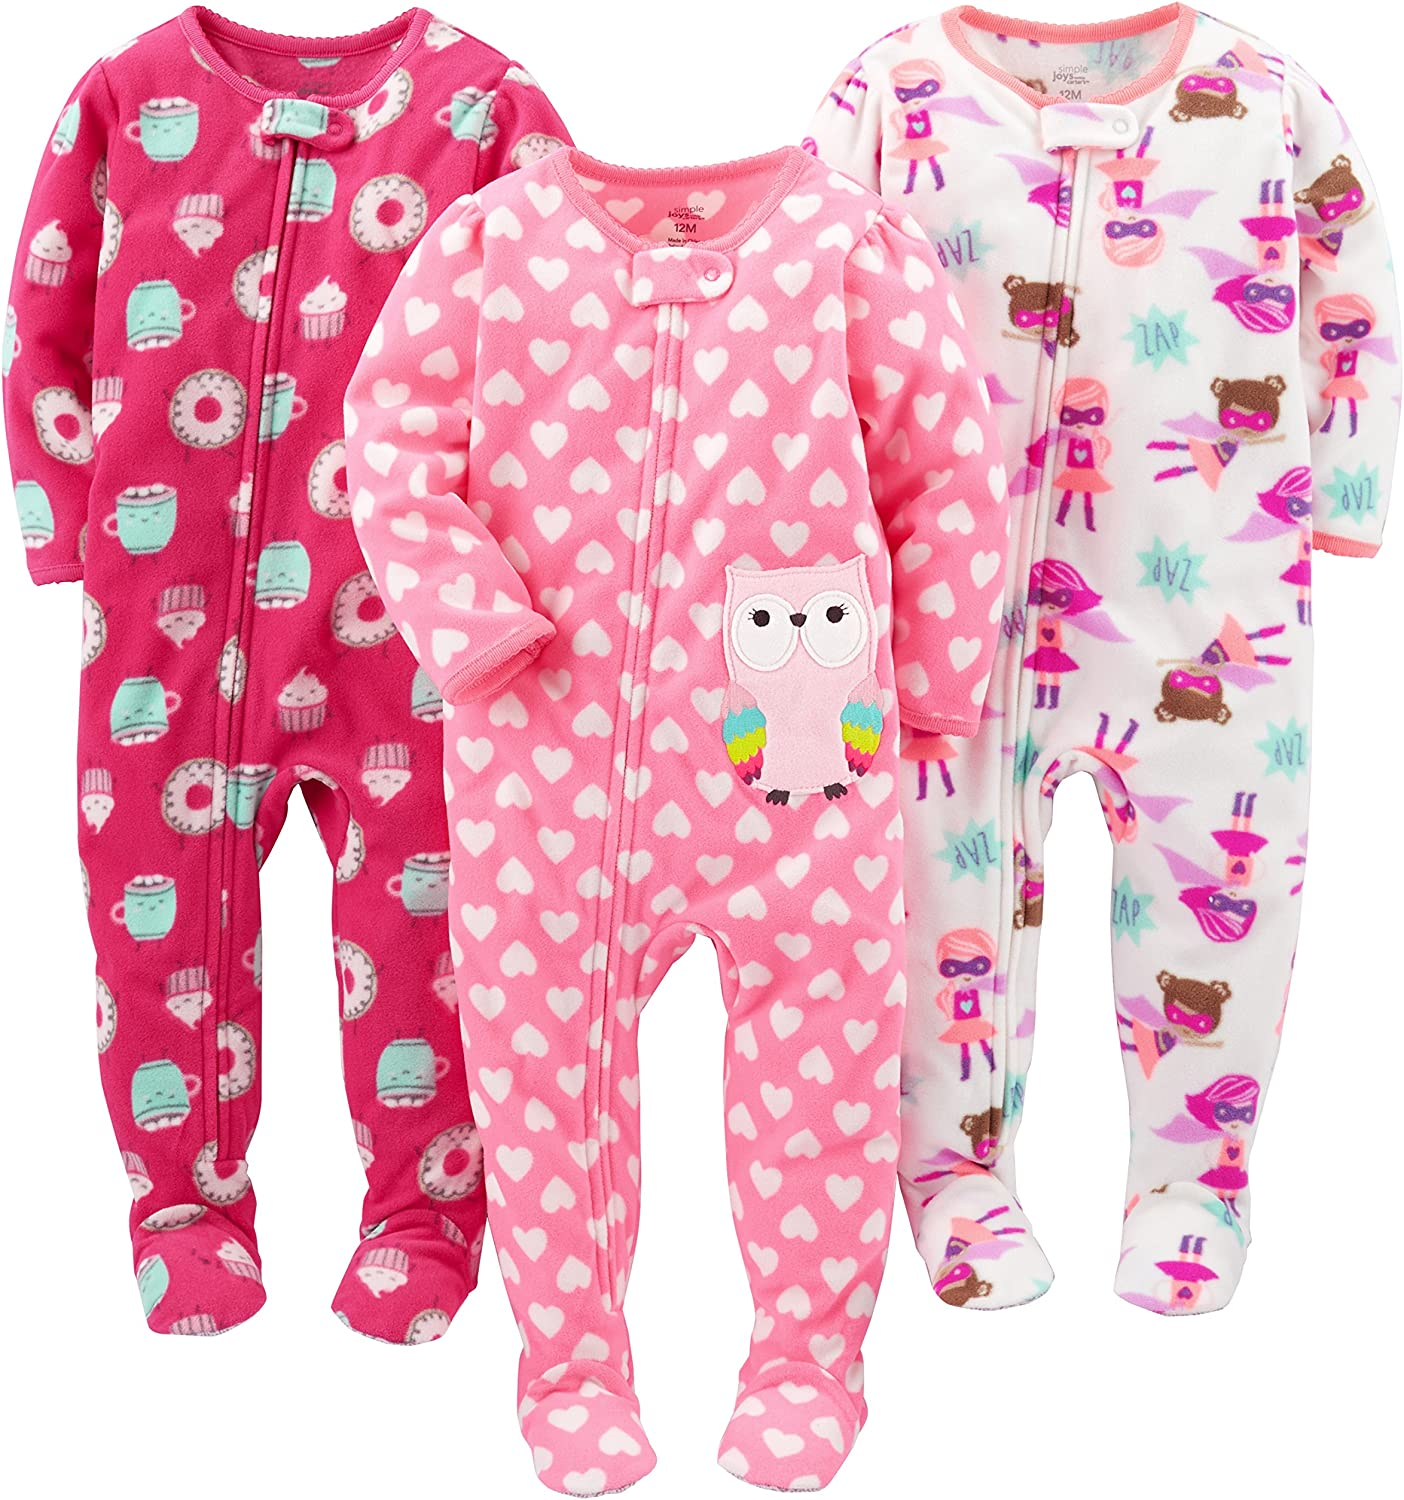 Pacco da 3 Simple Joys by Carters 3-Pack Loose Fit Flame Resistant Fleece Footed Pajamas Bimba 0-24